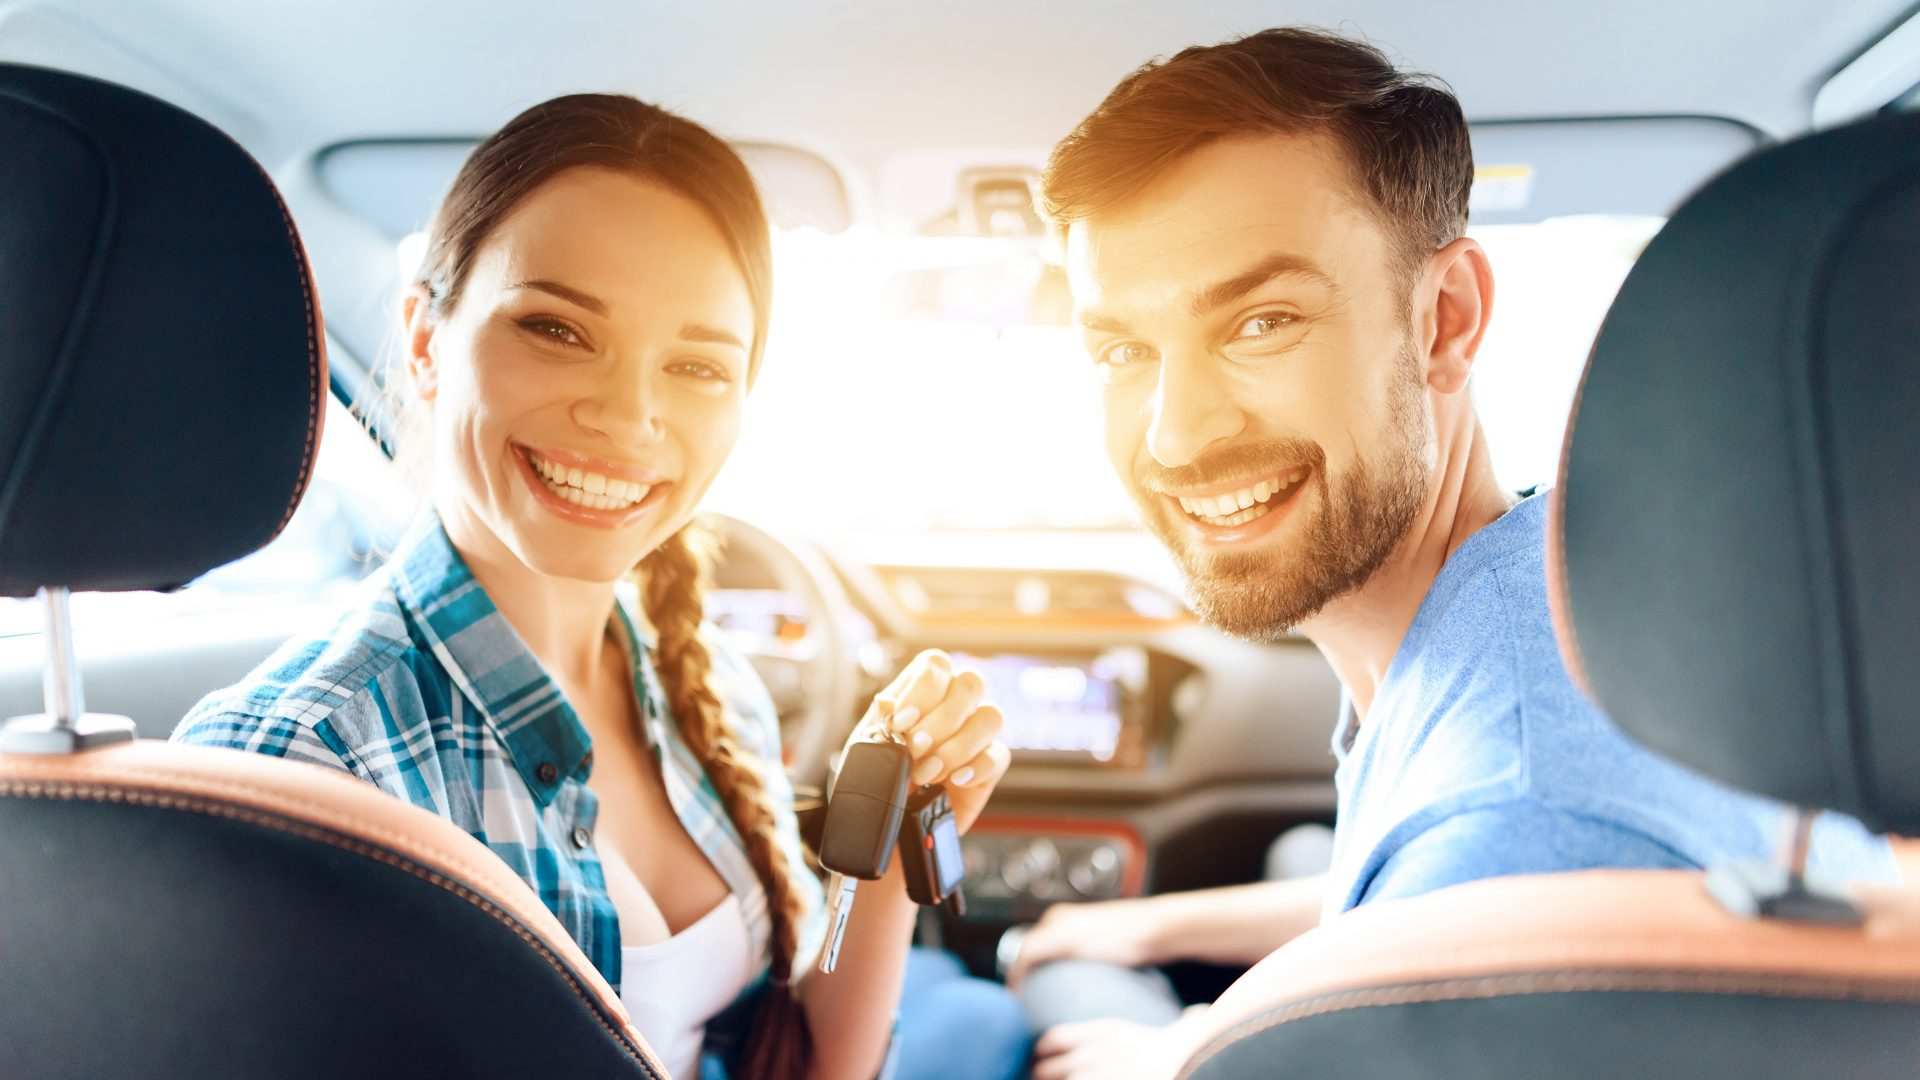 Girl and the guy are sitting in a new car and smiling.